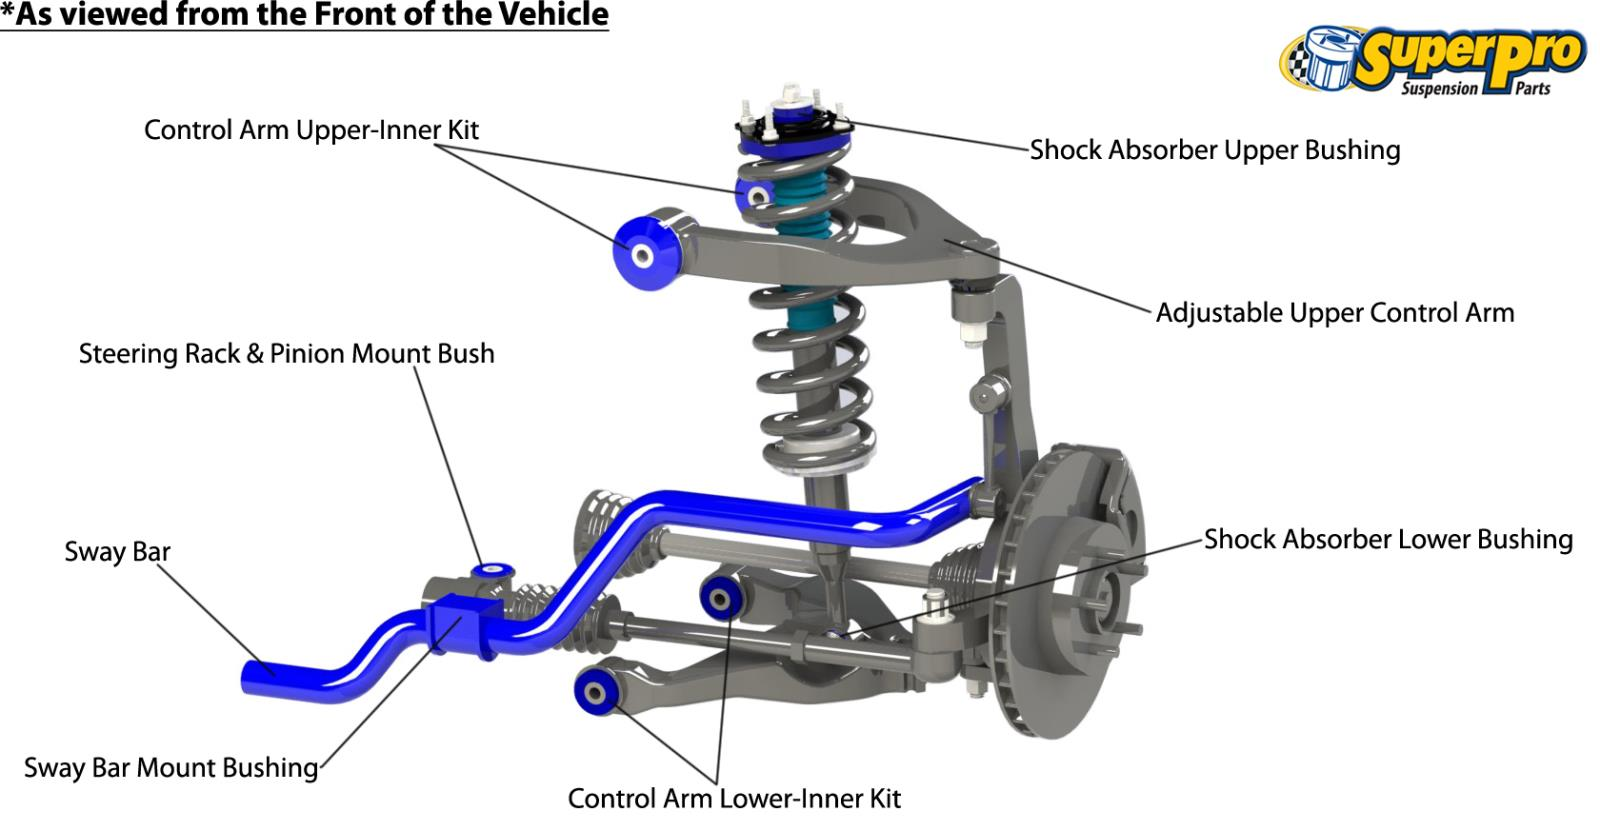 Front suspension diagram for TOYOTA HILUX 2015-on - GGN, GUN 4WD